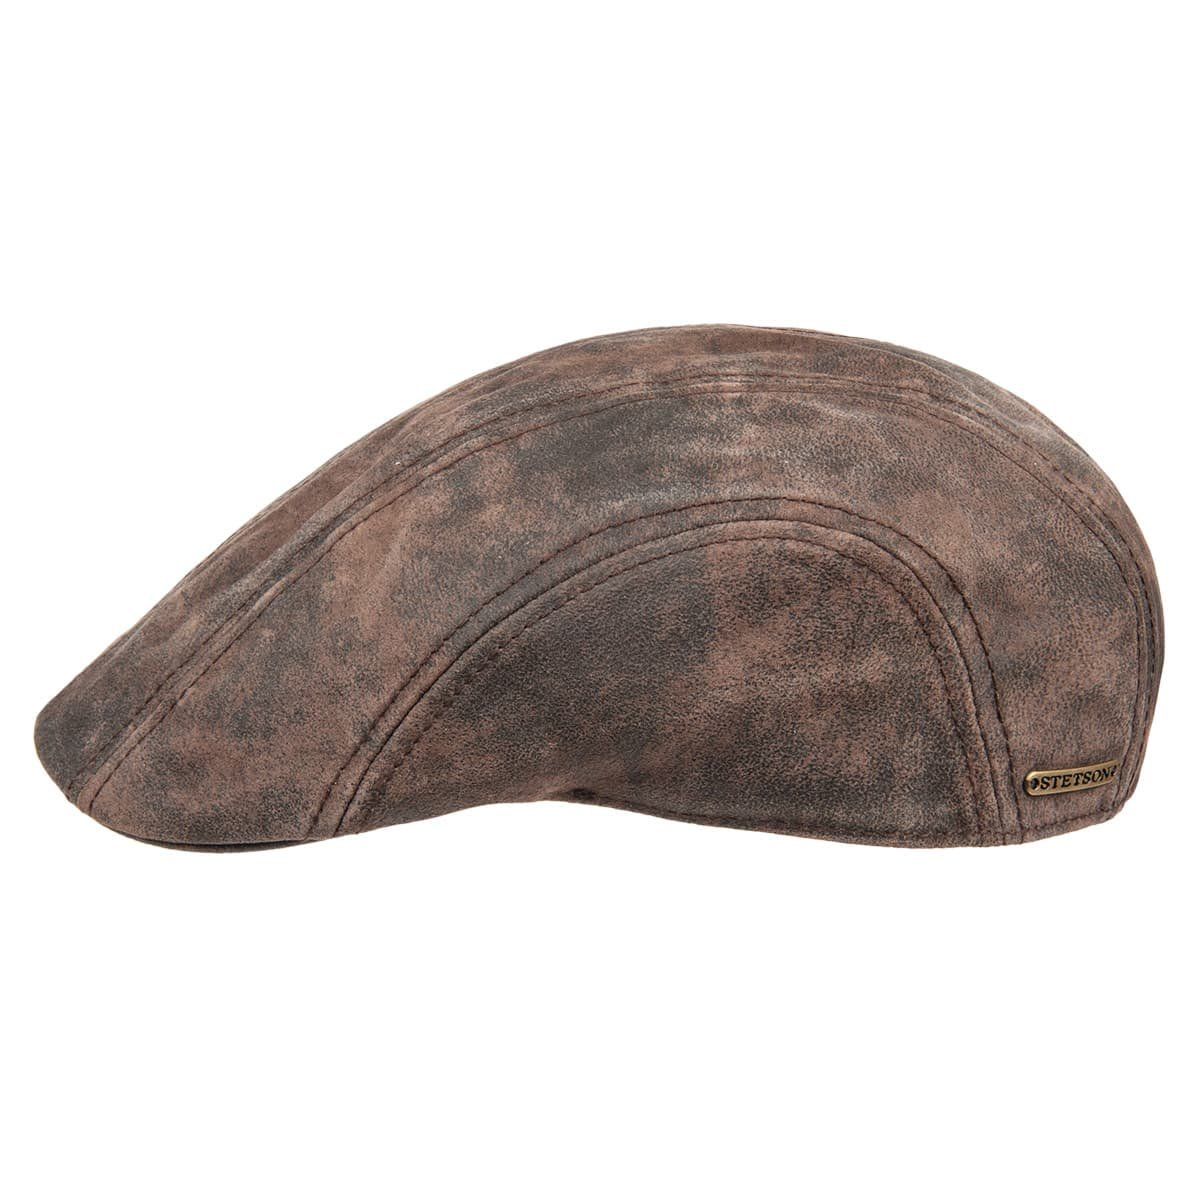 0c5c826be91 Trendy flat cap in leather signed Stetson